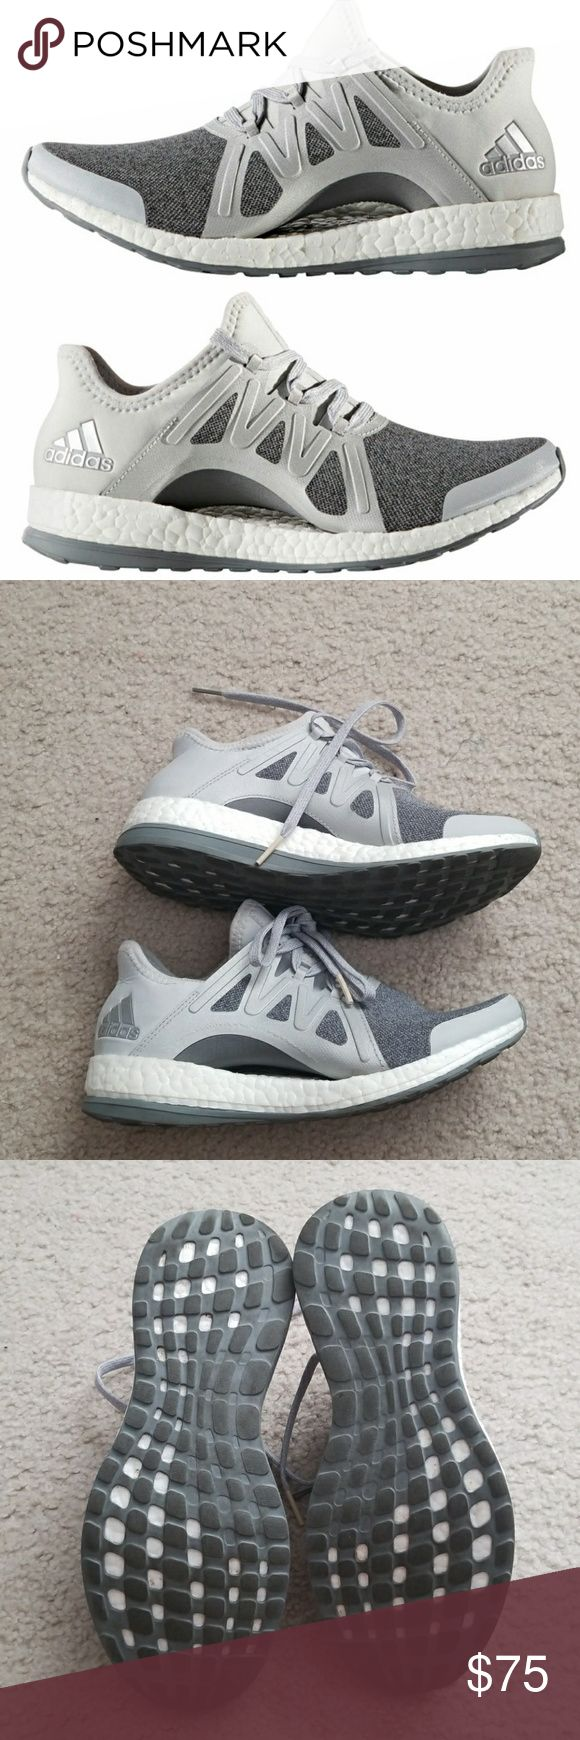 Adidas Pure Boost Size 5 women- fit size 5.5 or 6 Worn few times, in great condition  No flaws adidas Shoes Athletic Shoes